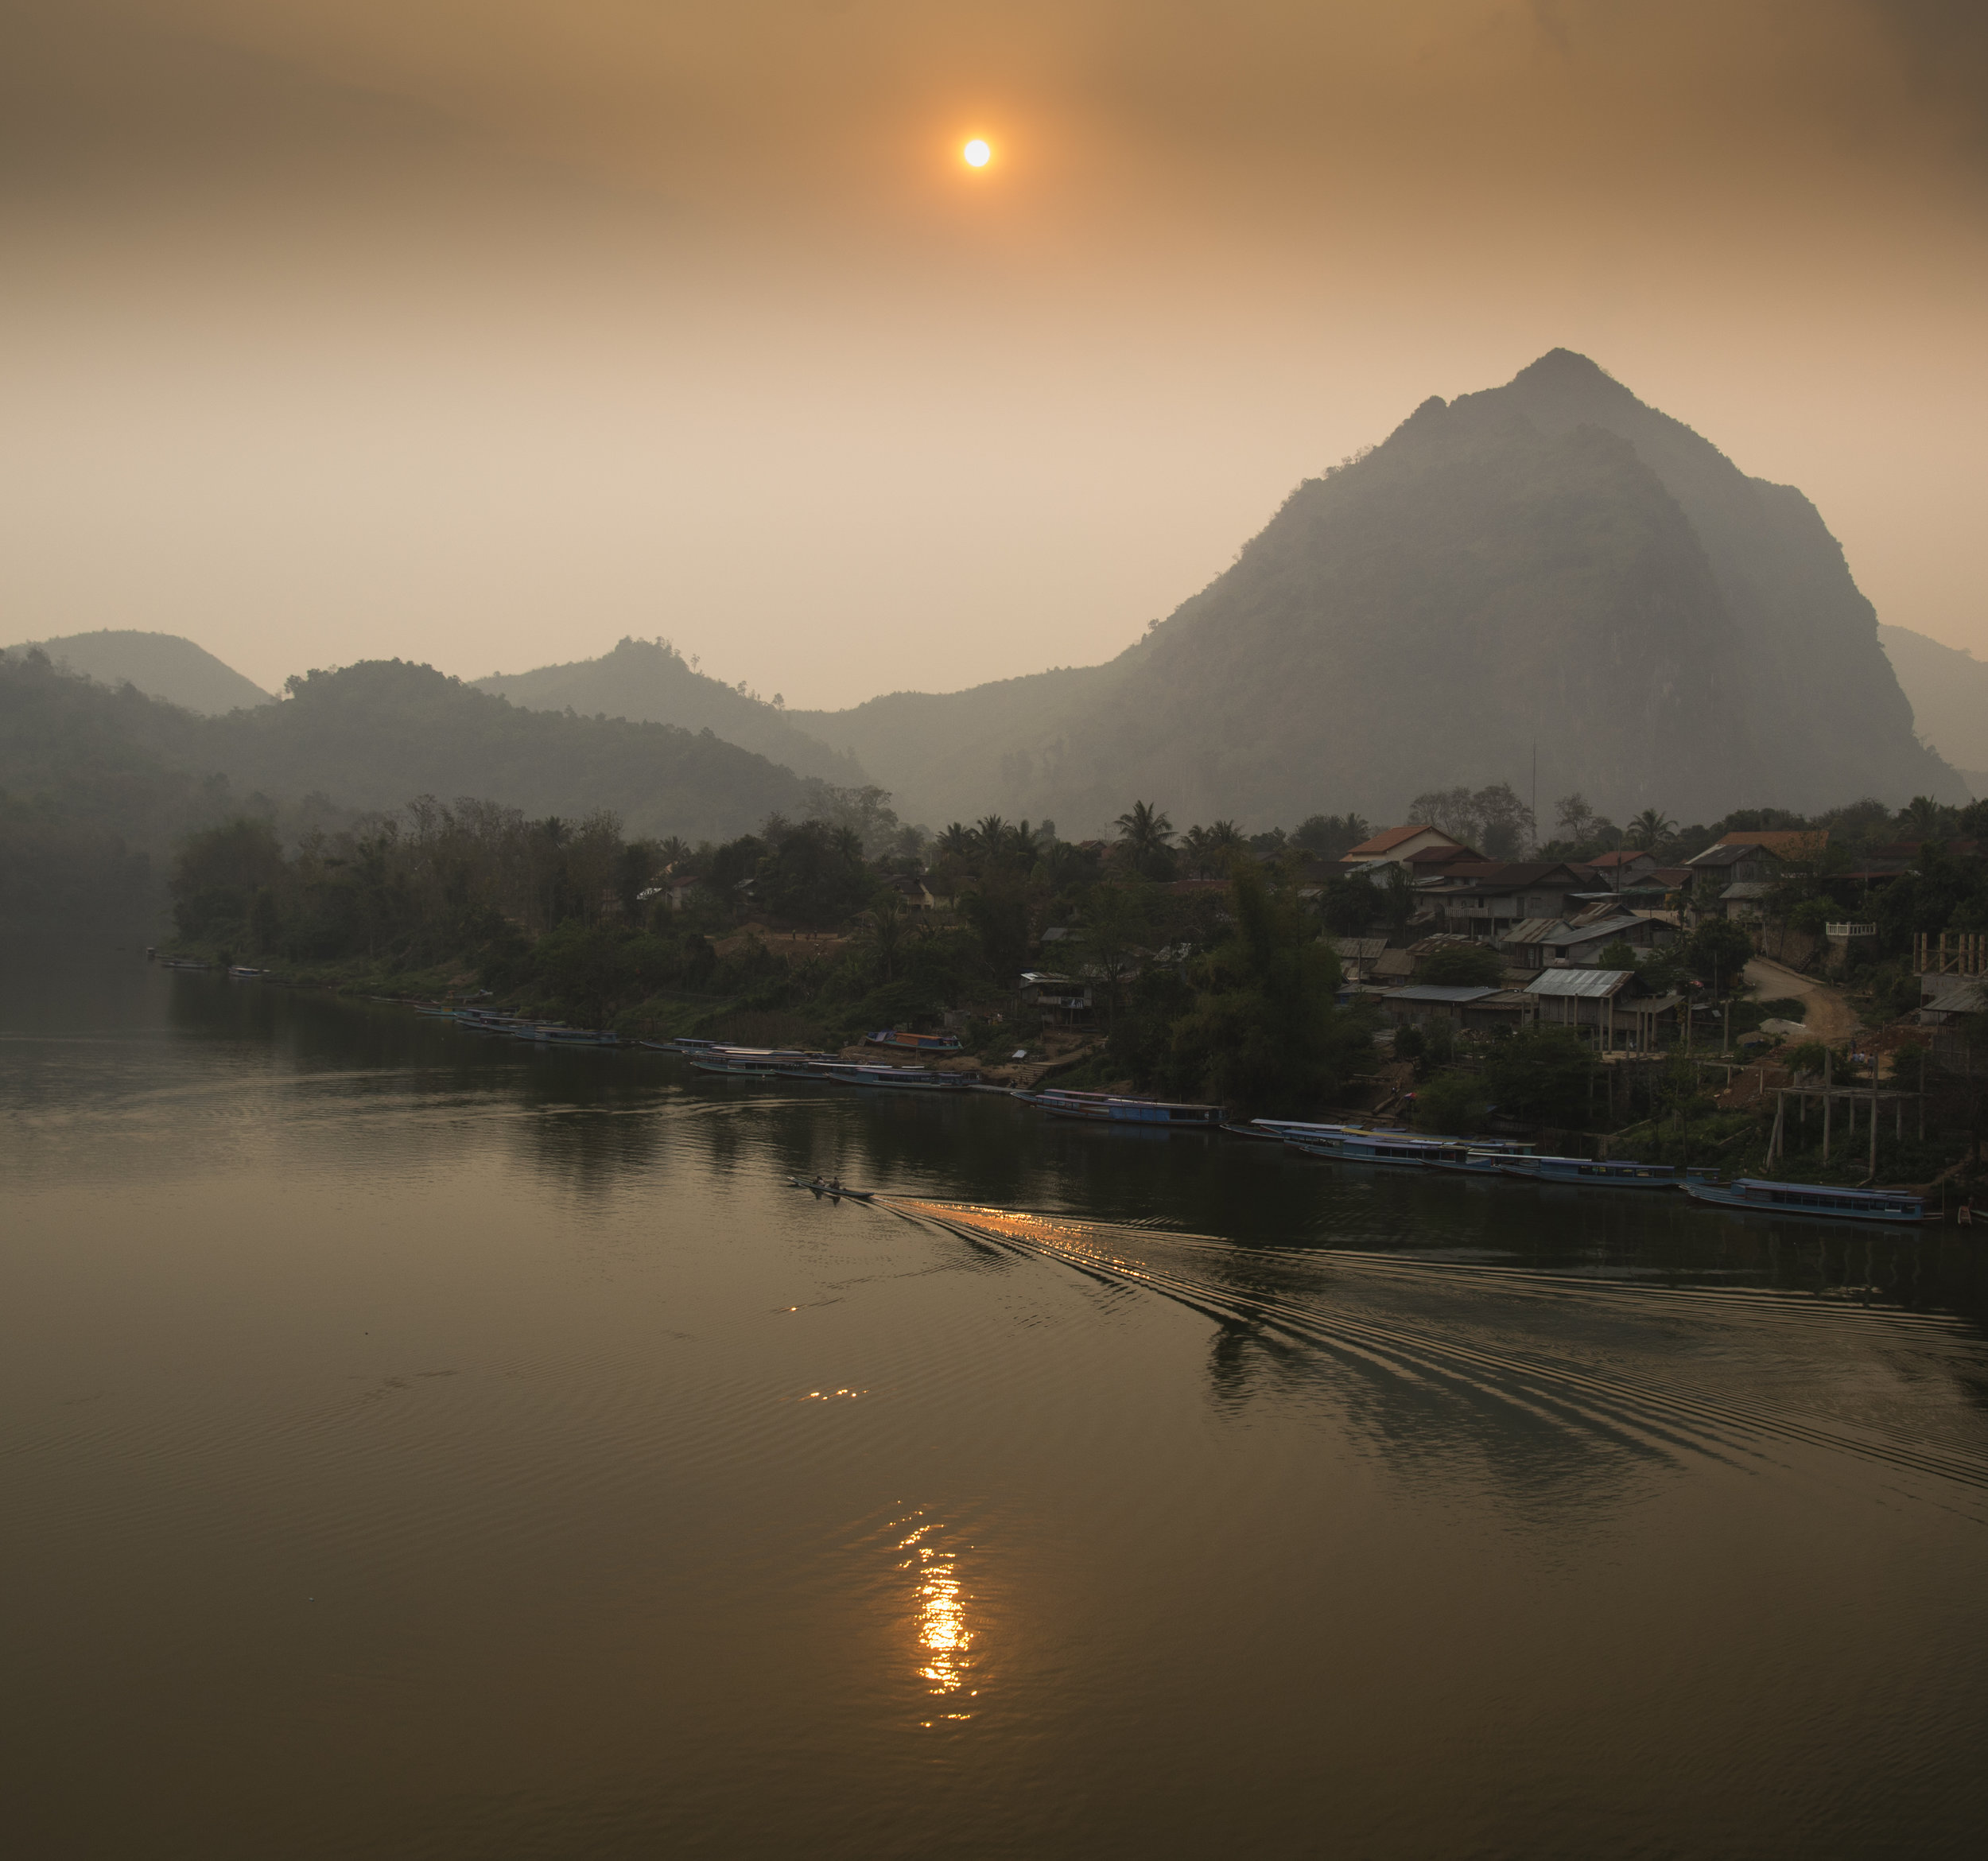 _4.24 Sunset at Nong Khiaw, Laos.jpg